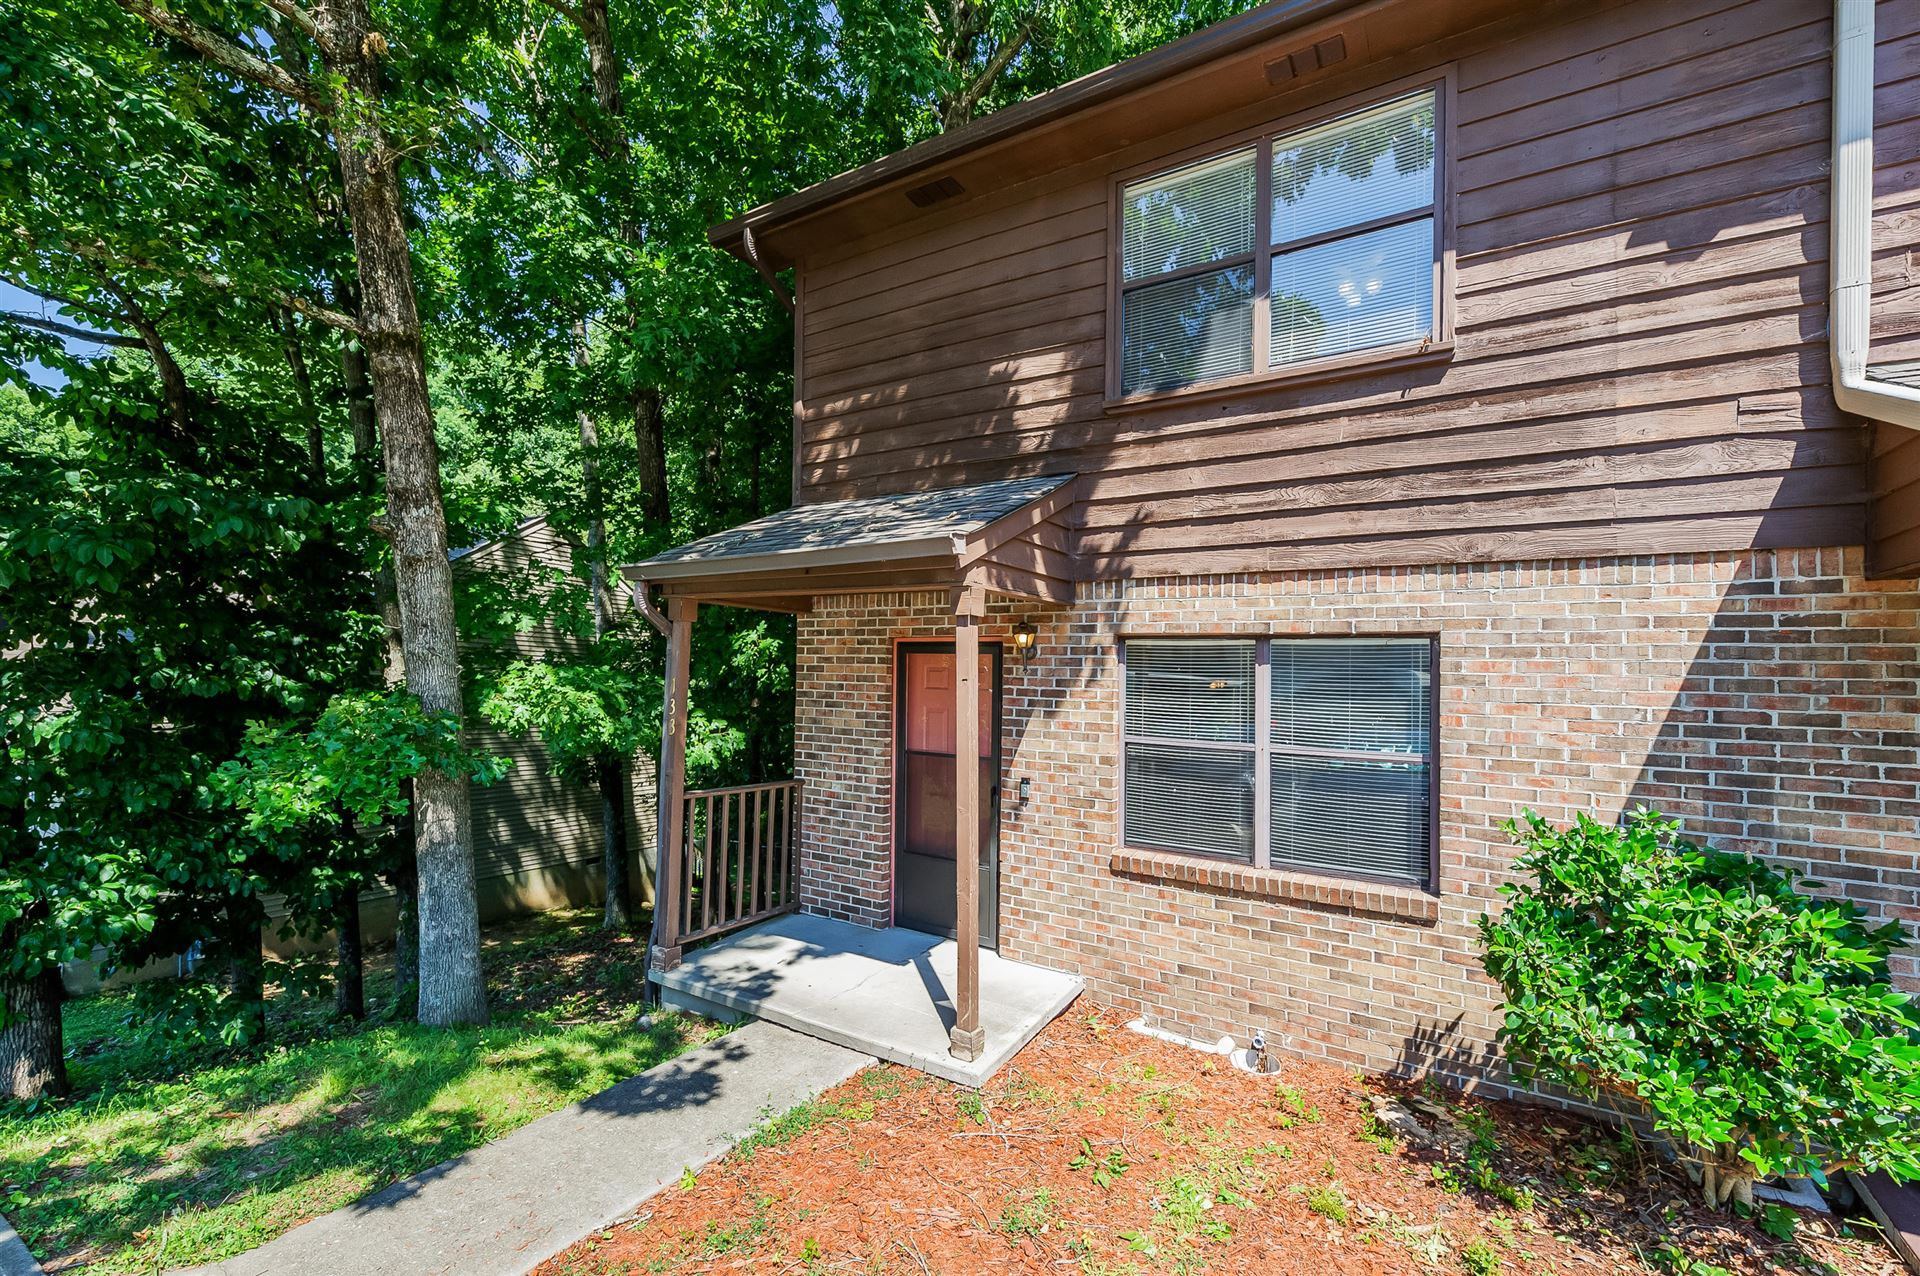 Photo of 133 High Point Lane, Oak Ridge, TN 37830 (MLS # 1121845)